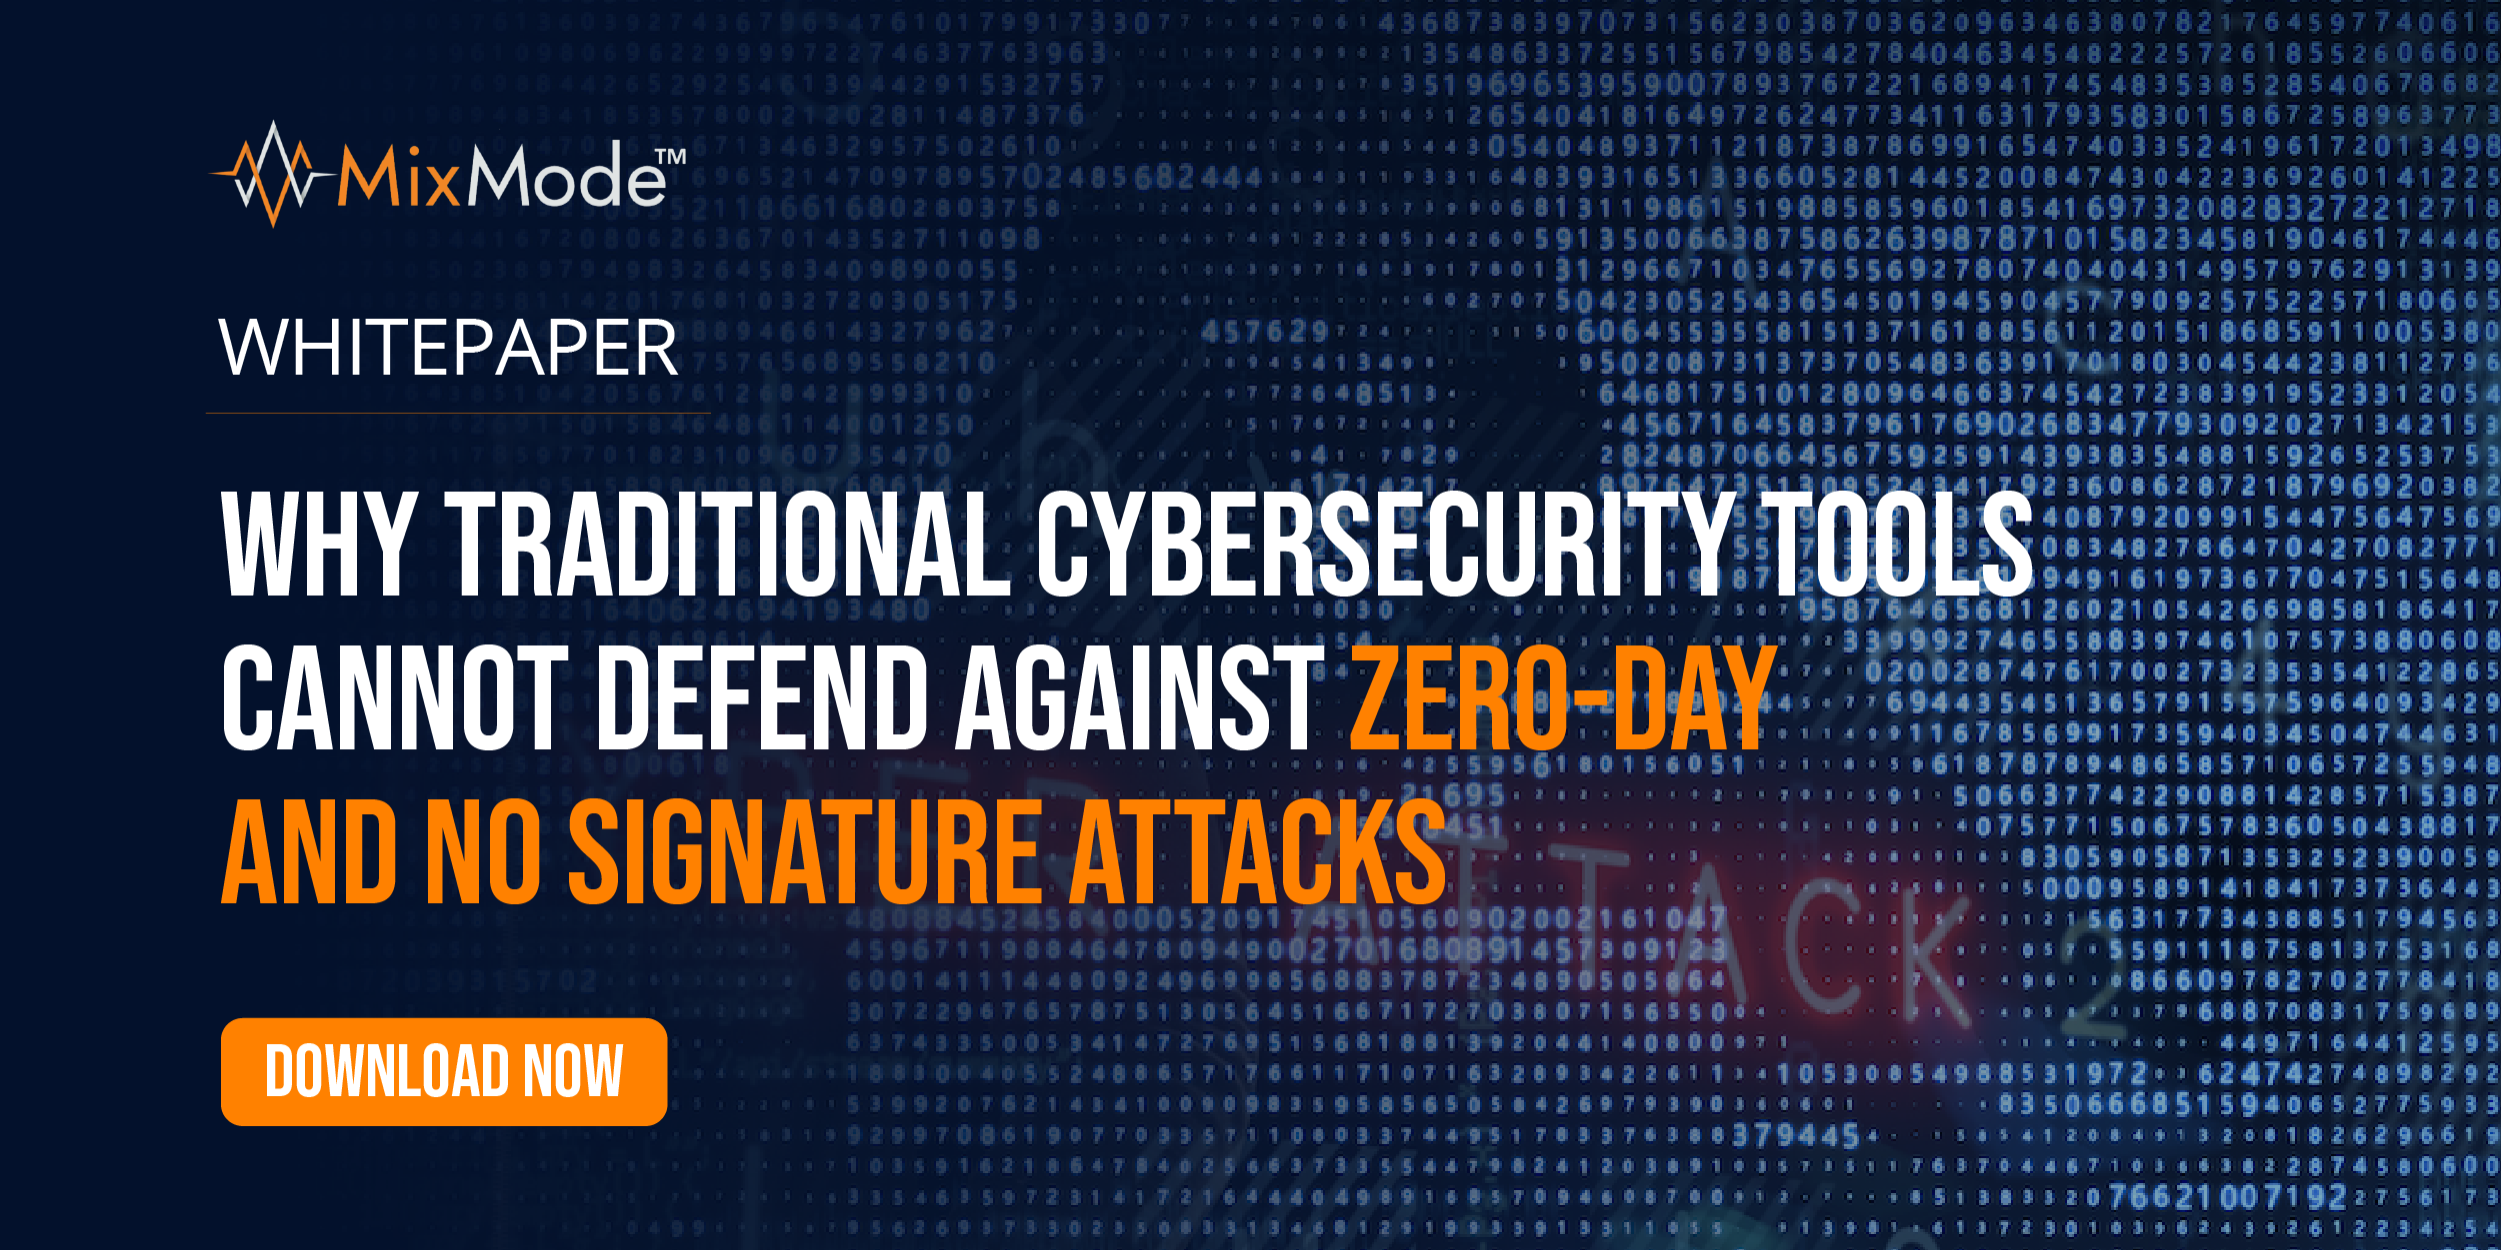 Why Traditional Cybersecurity Tools Cannot Defend Against Zero-Day and No Signature Attacks-29